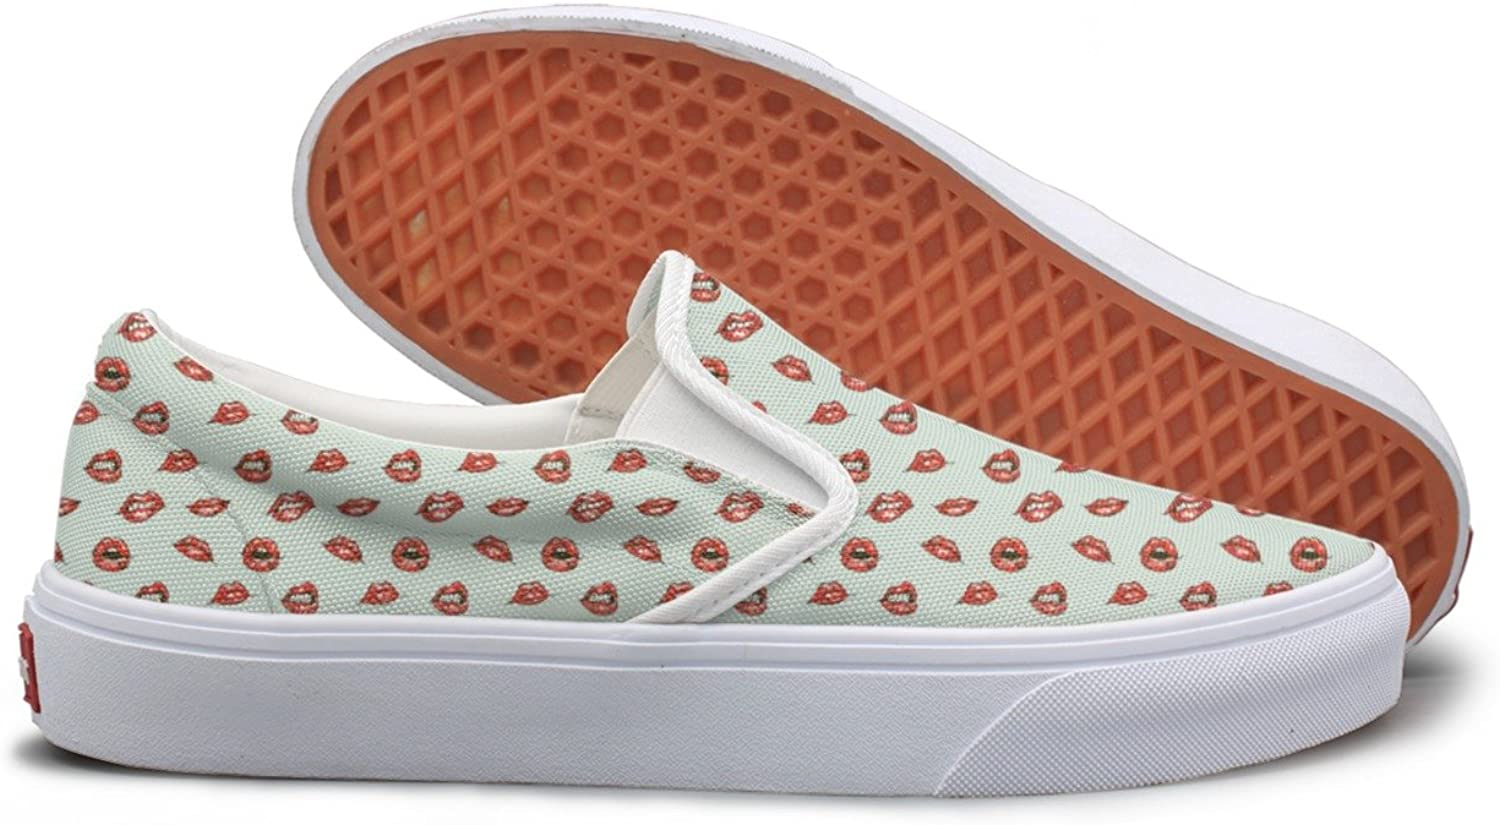 Lalige Red Lips Women's Printed Graphics Canvas Slip-on Slip-ons